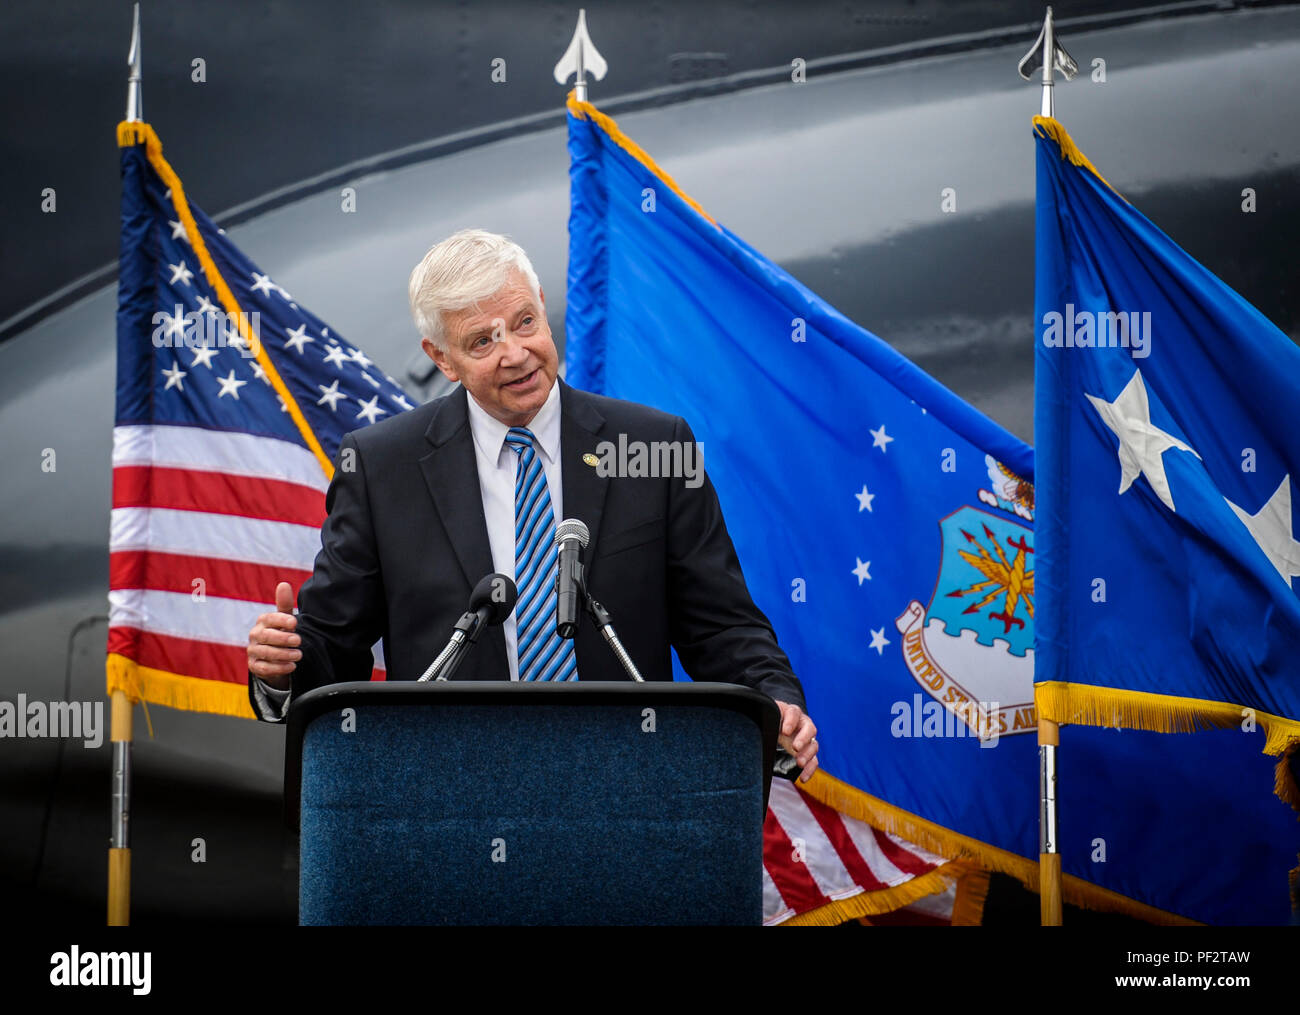 Retired Gen. Charles Holland, former commander of U.S. Special Operations Command and Air Force Special Operations Command, speaks to guests during the AC-130H Spectre dedication ceremony at Hurlburt Field, Fla., Feb. 2, 2016. The Spectre played a role in operations all over the world, first in Vietnam, proceeding into the latter of the 20th century with operations Eagle Claw, Urgent Fury, Just Cause and Desert Storm. The last operational years of the AC-130H Spectre were spent flying combat missions in the Balkans and Somalia, and in Afghanistan in support of Operation Enduring Freedom. (U.S. - Stock Image